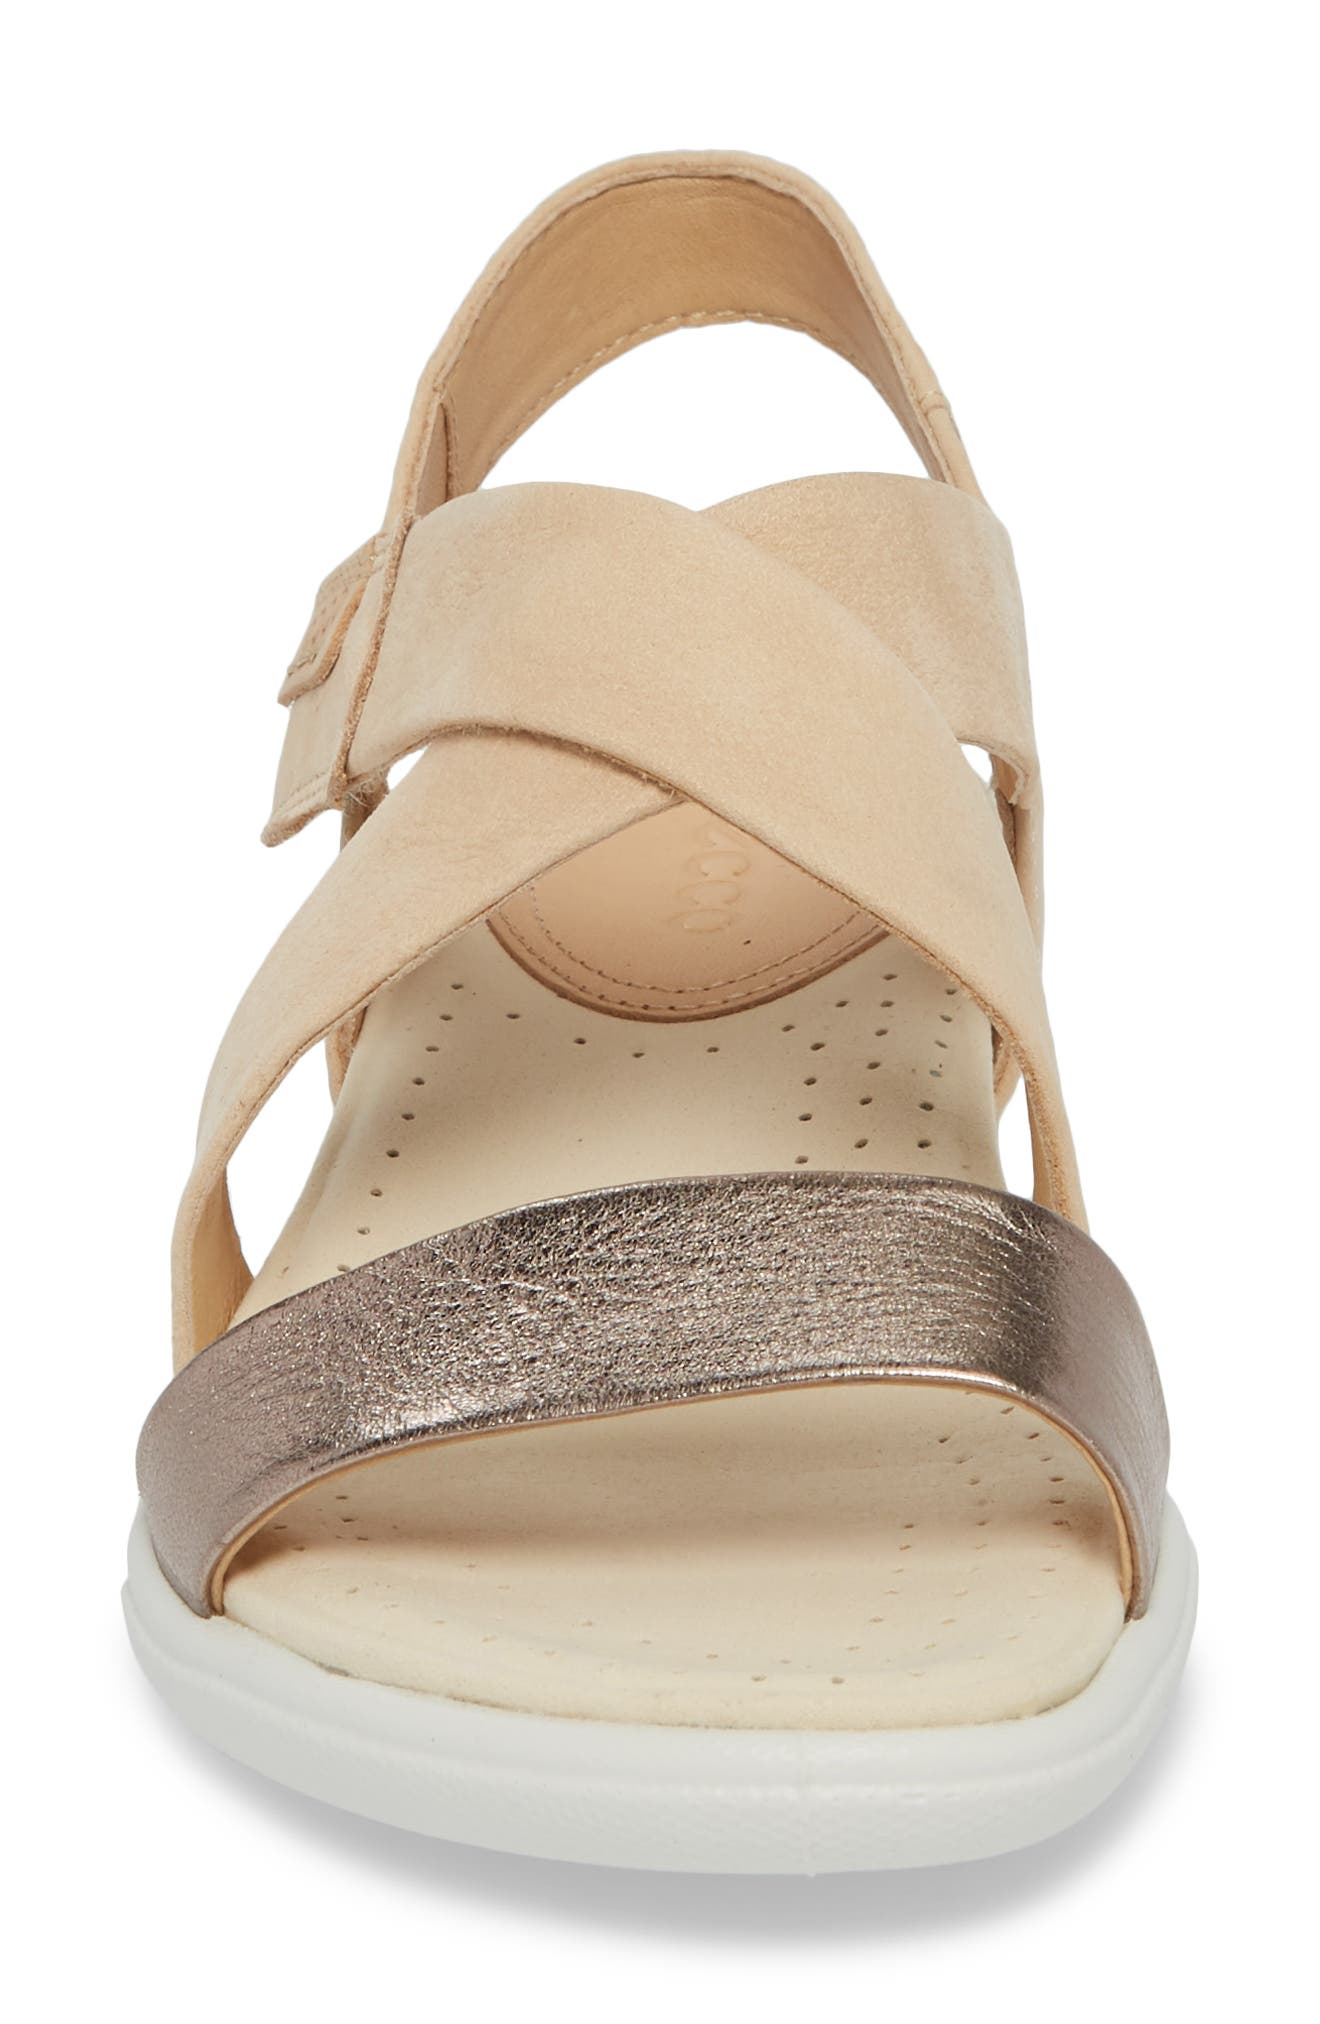 Damara Cross-Strap Sandal,                             Alternate thumbnail 24, color,